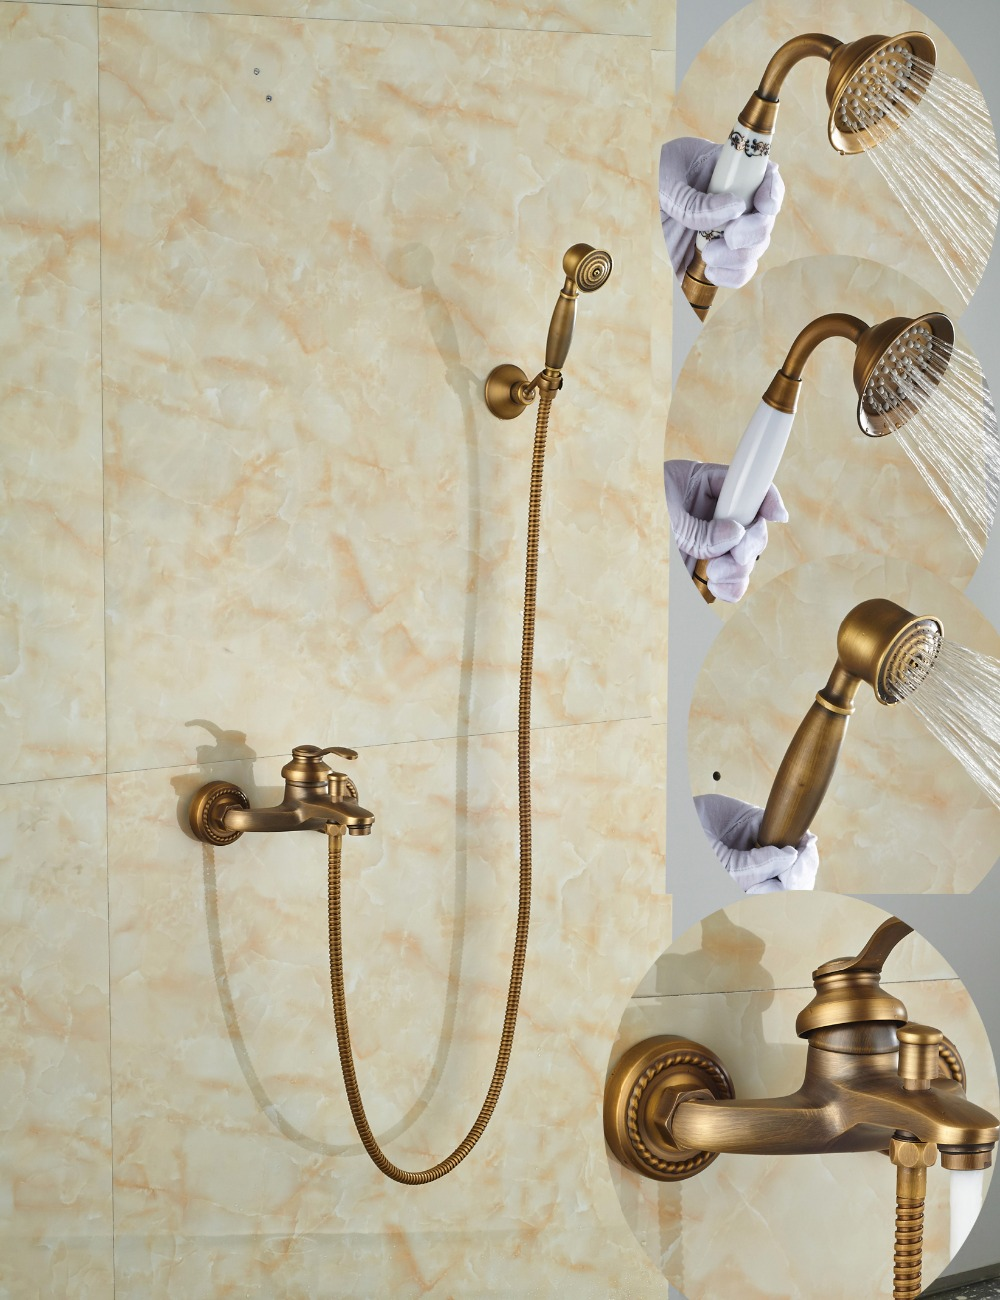 цена на Wholesale And Retail Ceramic Style Antique Brass Bathroom Tub Faucet Single Handle W/ Hand Shower Sprayer Wall Mounted